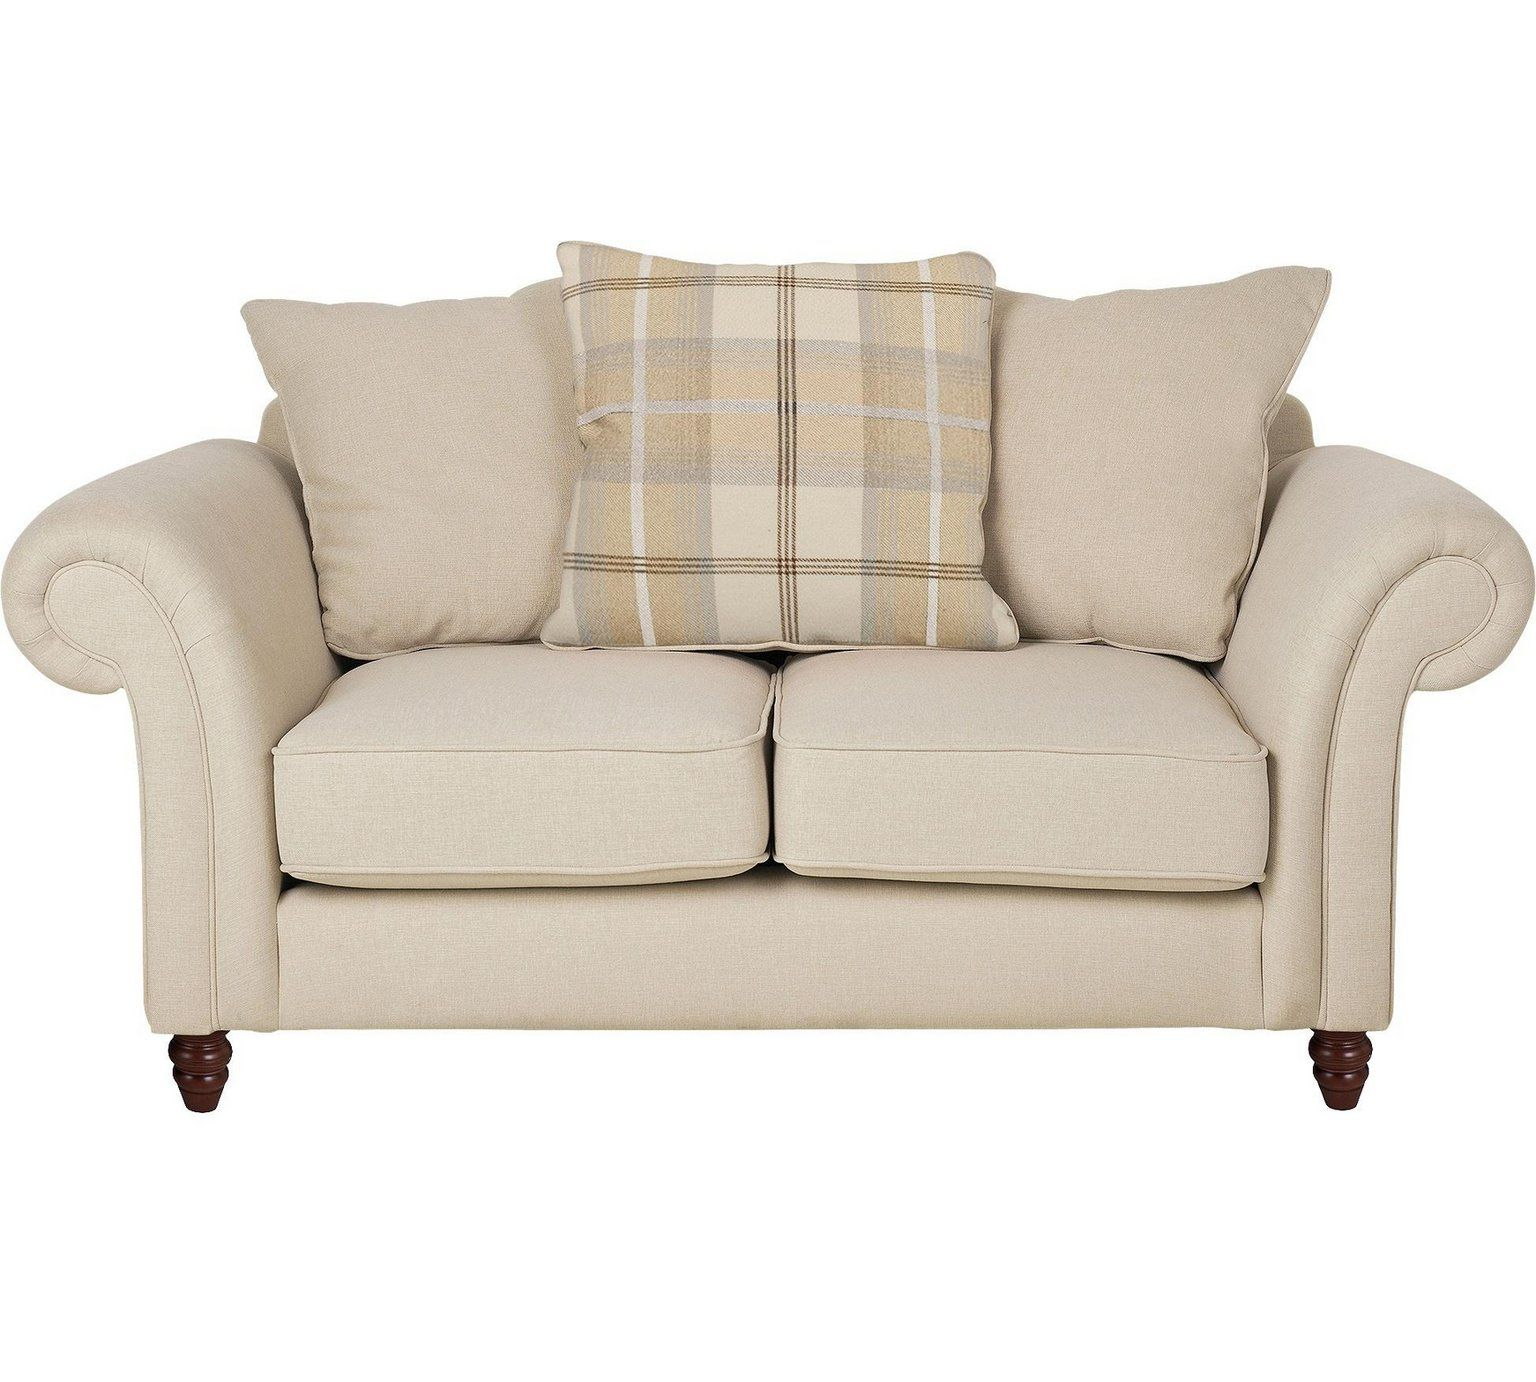 Buy Heart of House Windsor 2 Seater Fabric Sofa - Cream /Natural at ...